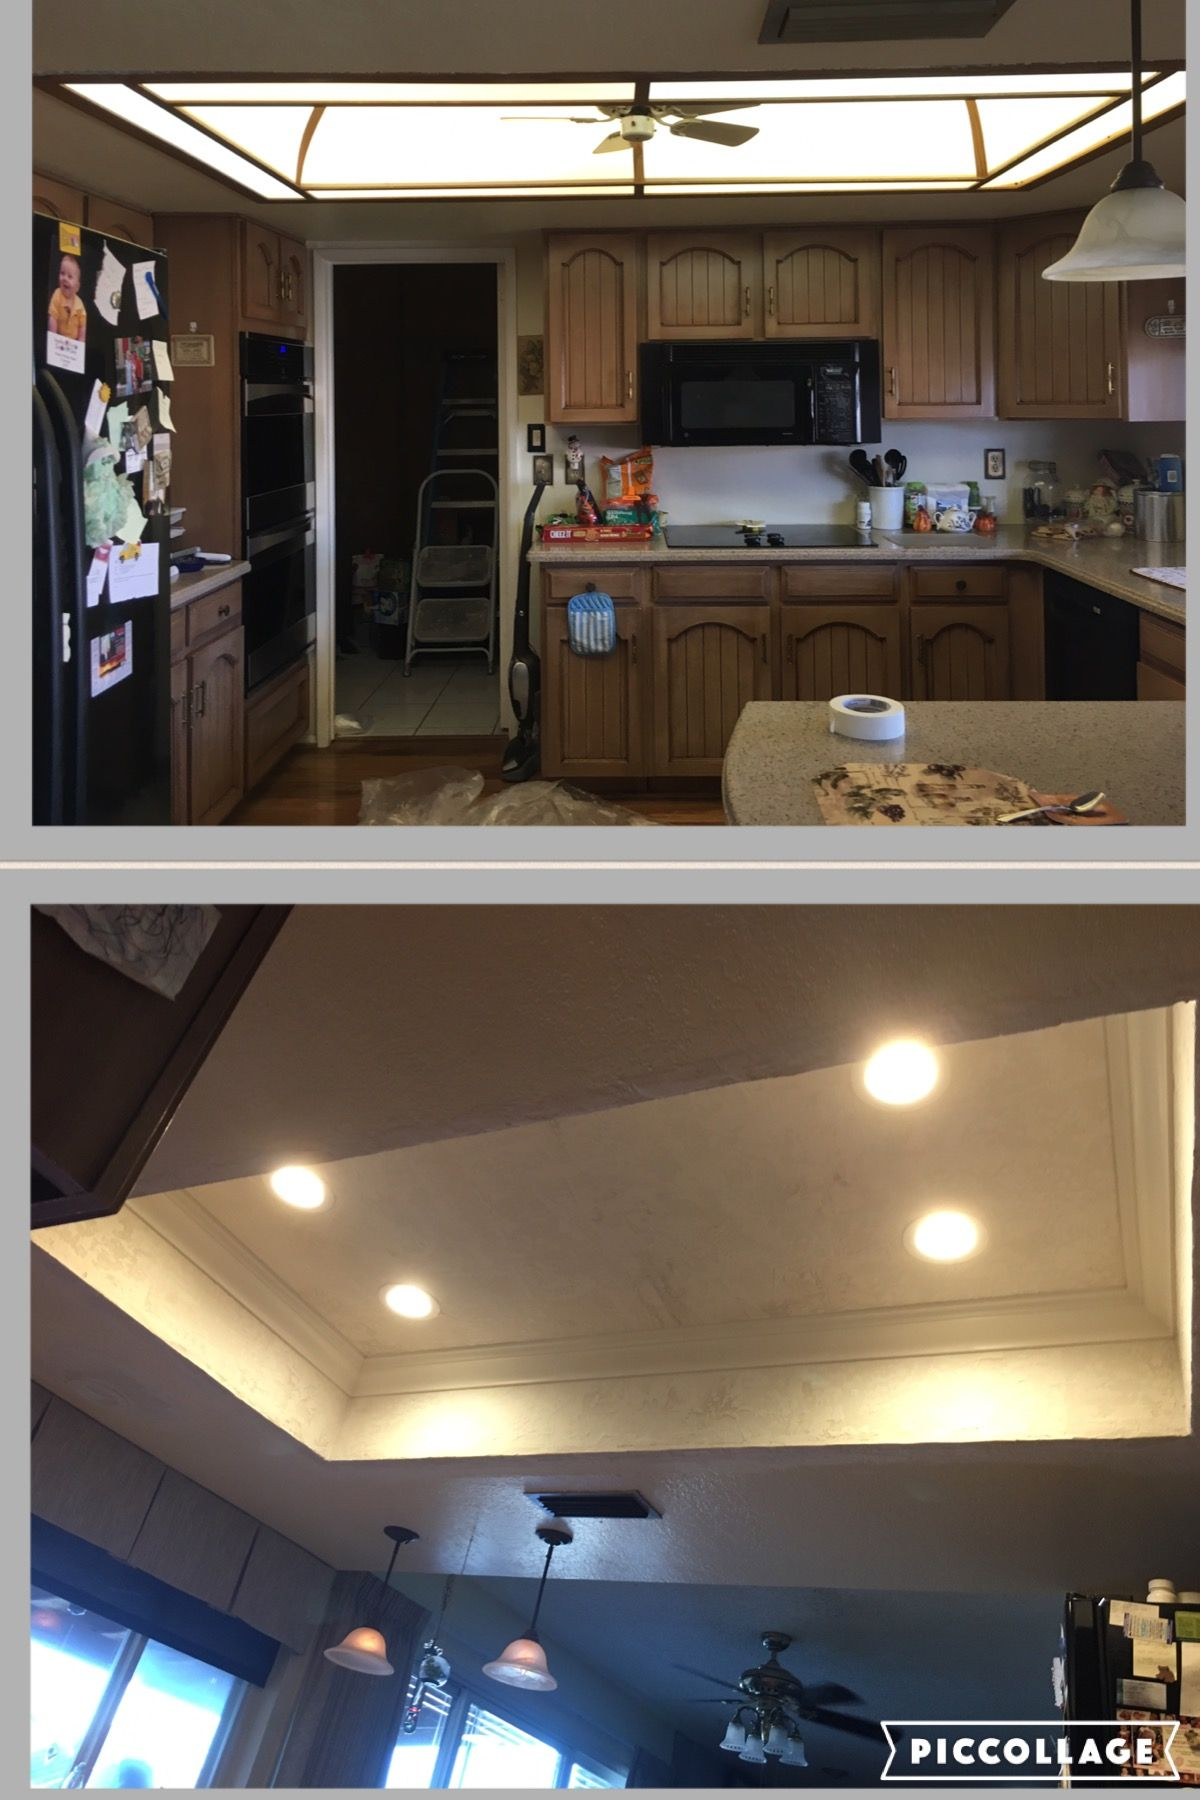 AZ Recessed Lighting Kitchen Transformation Demo LED lighting